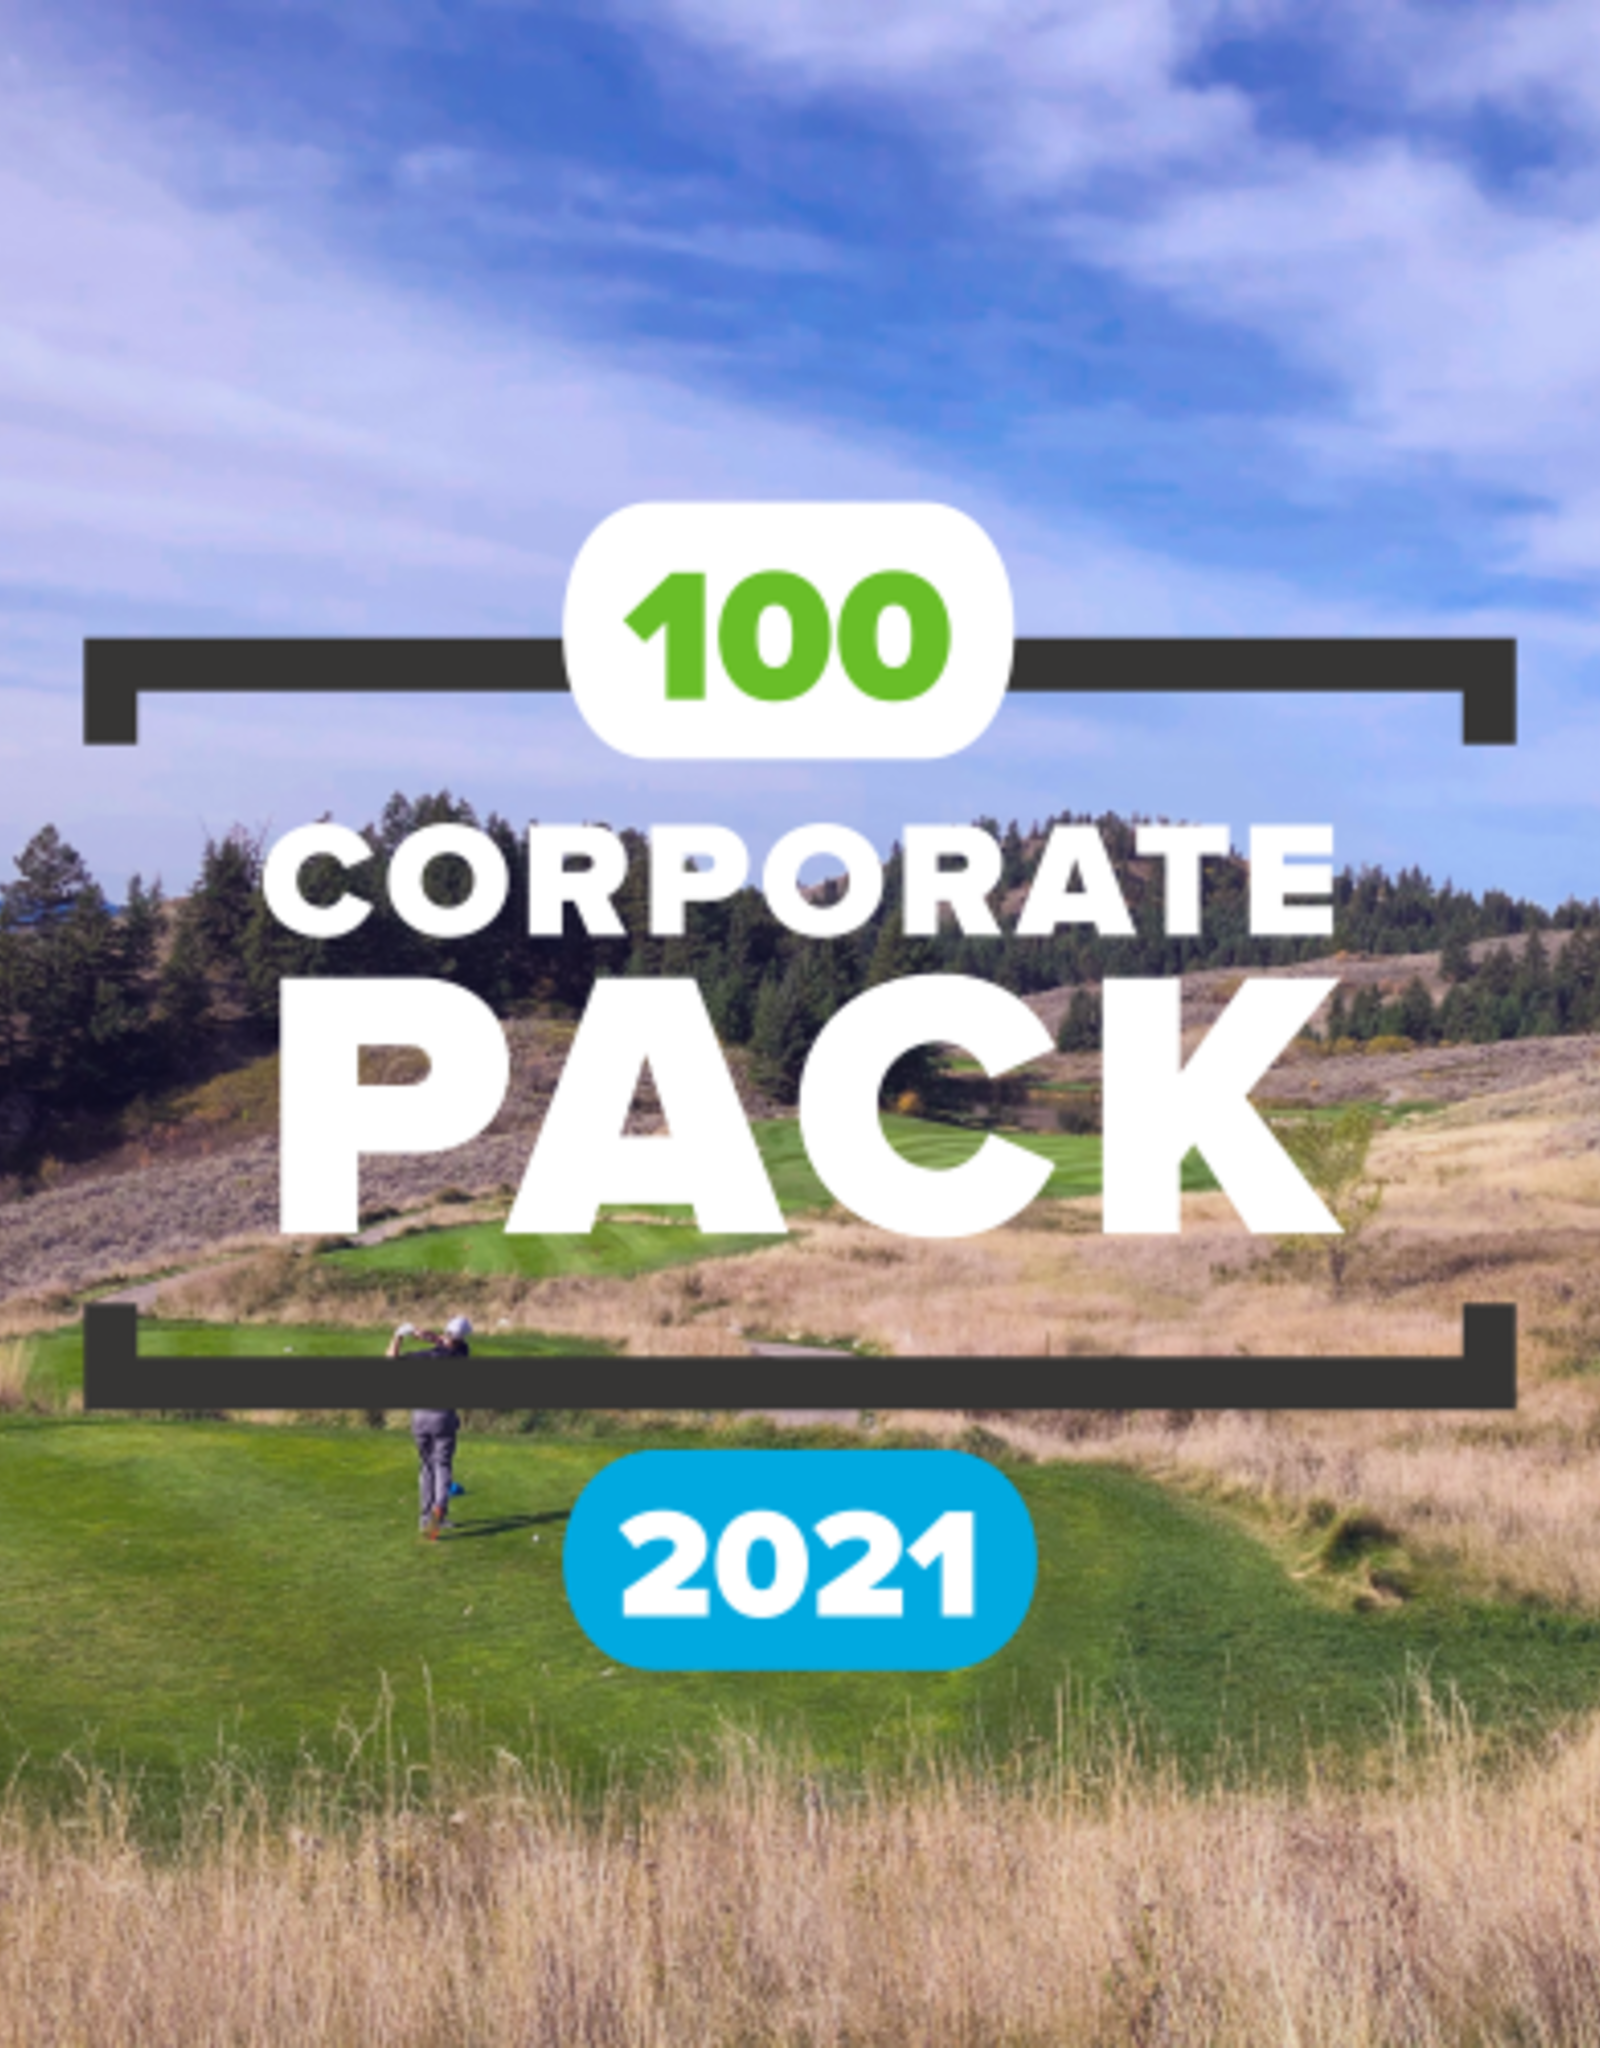 The Rise 2021 Corporate 100